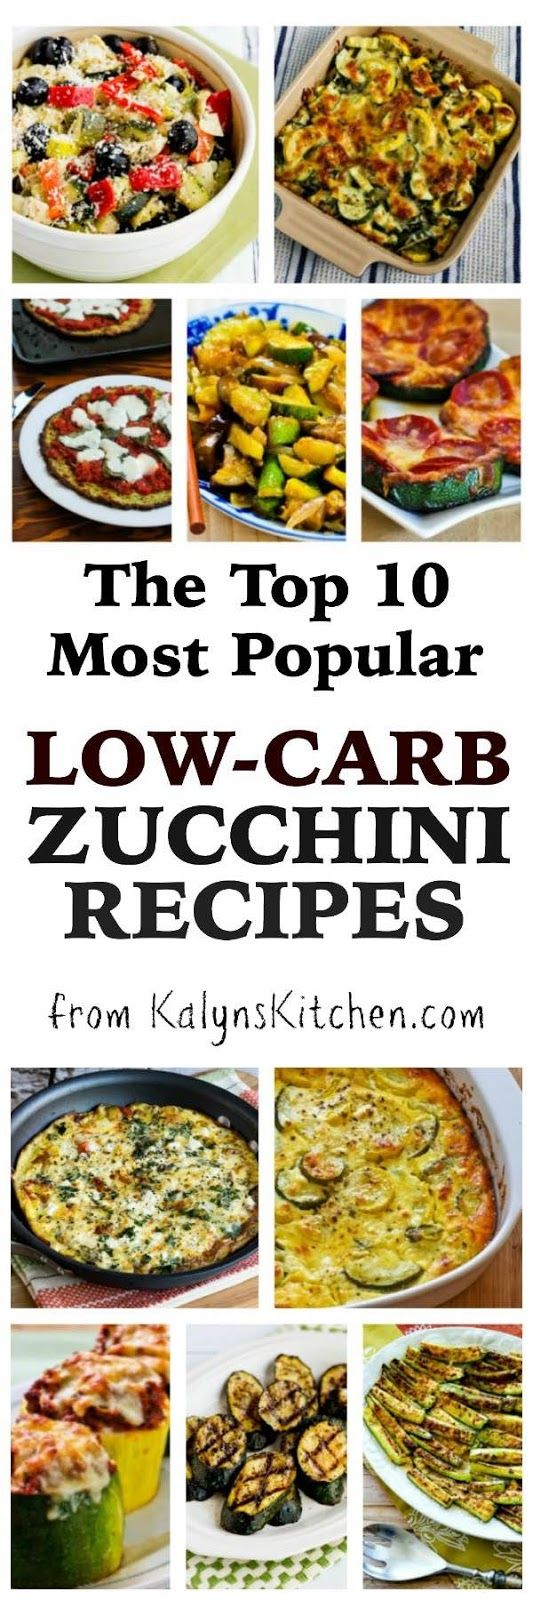 Out of more than 100 tasty zucchini recipes on my blog, these are The Top Ten Most Popular Low-Carb Zucchini Recipes from KalynsKitchen.com; these recipes combined have been viewed over 8 Million times on the blog! The recipes are also all gluten-free and South Beach Diet friendly; enjoy!